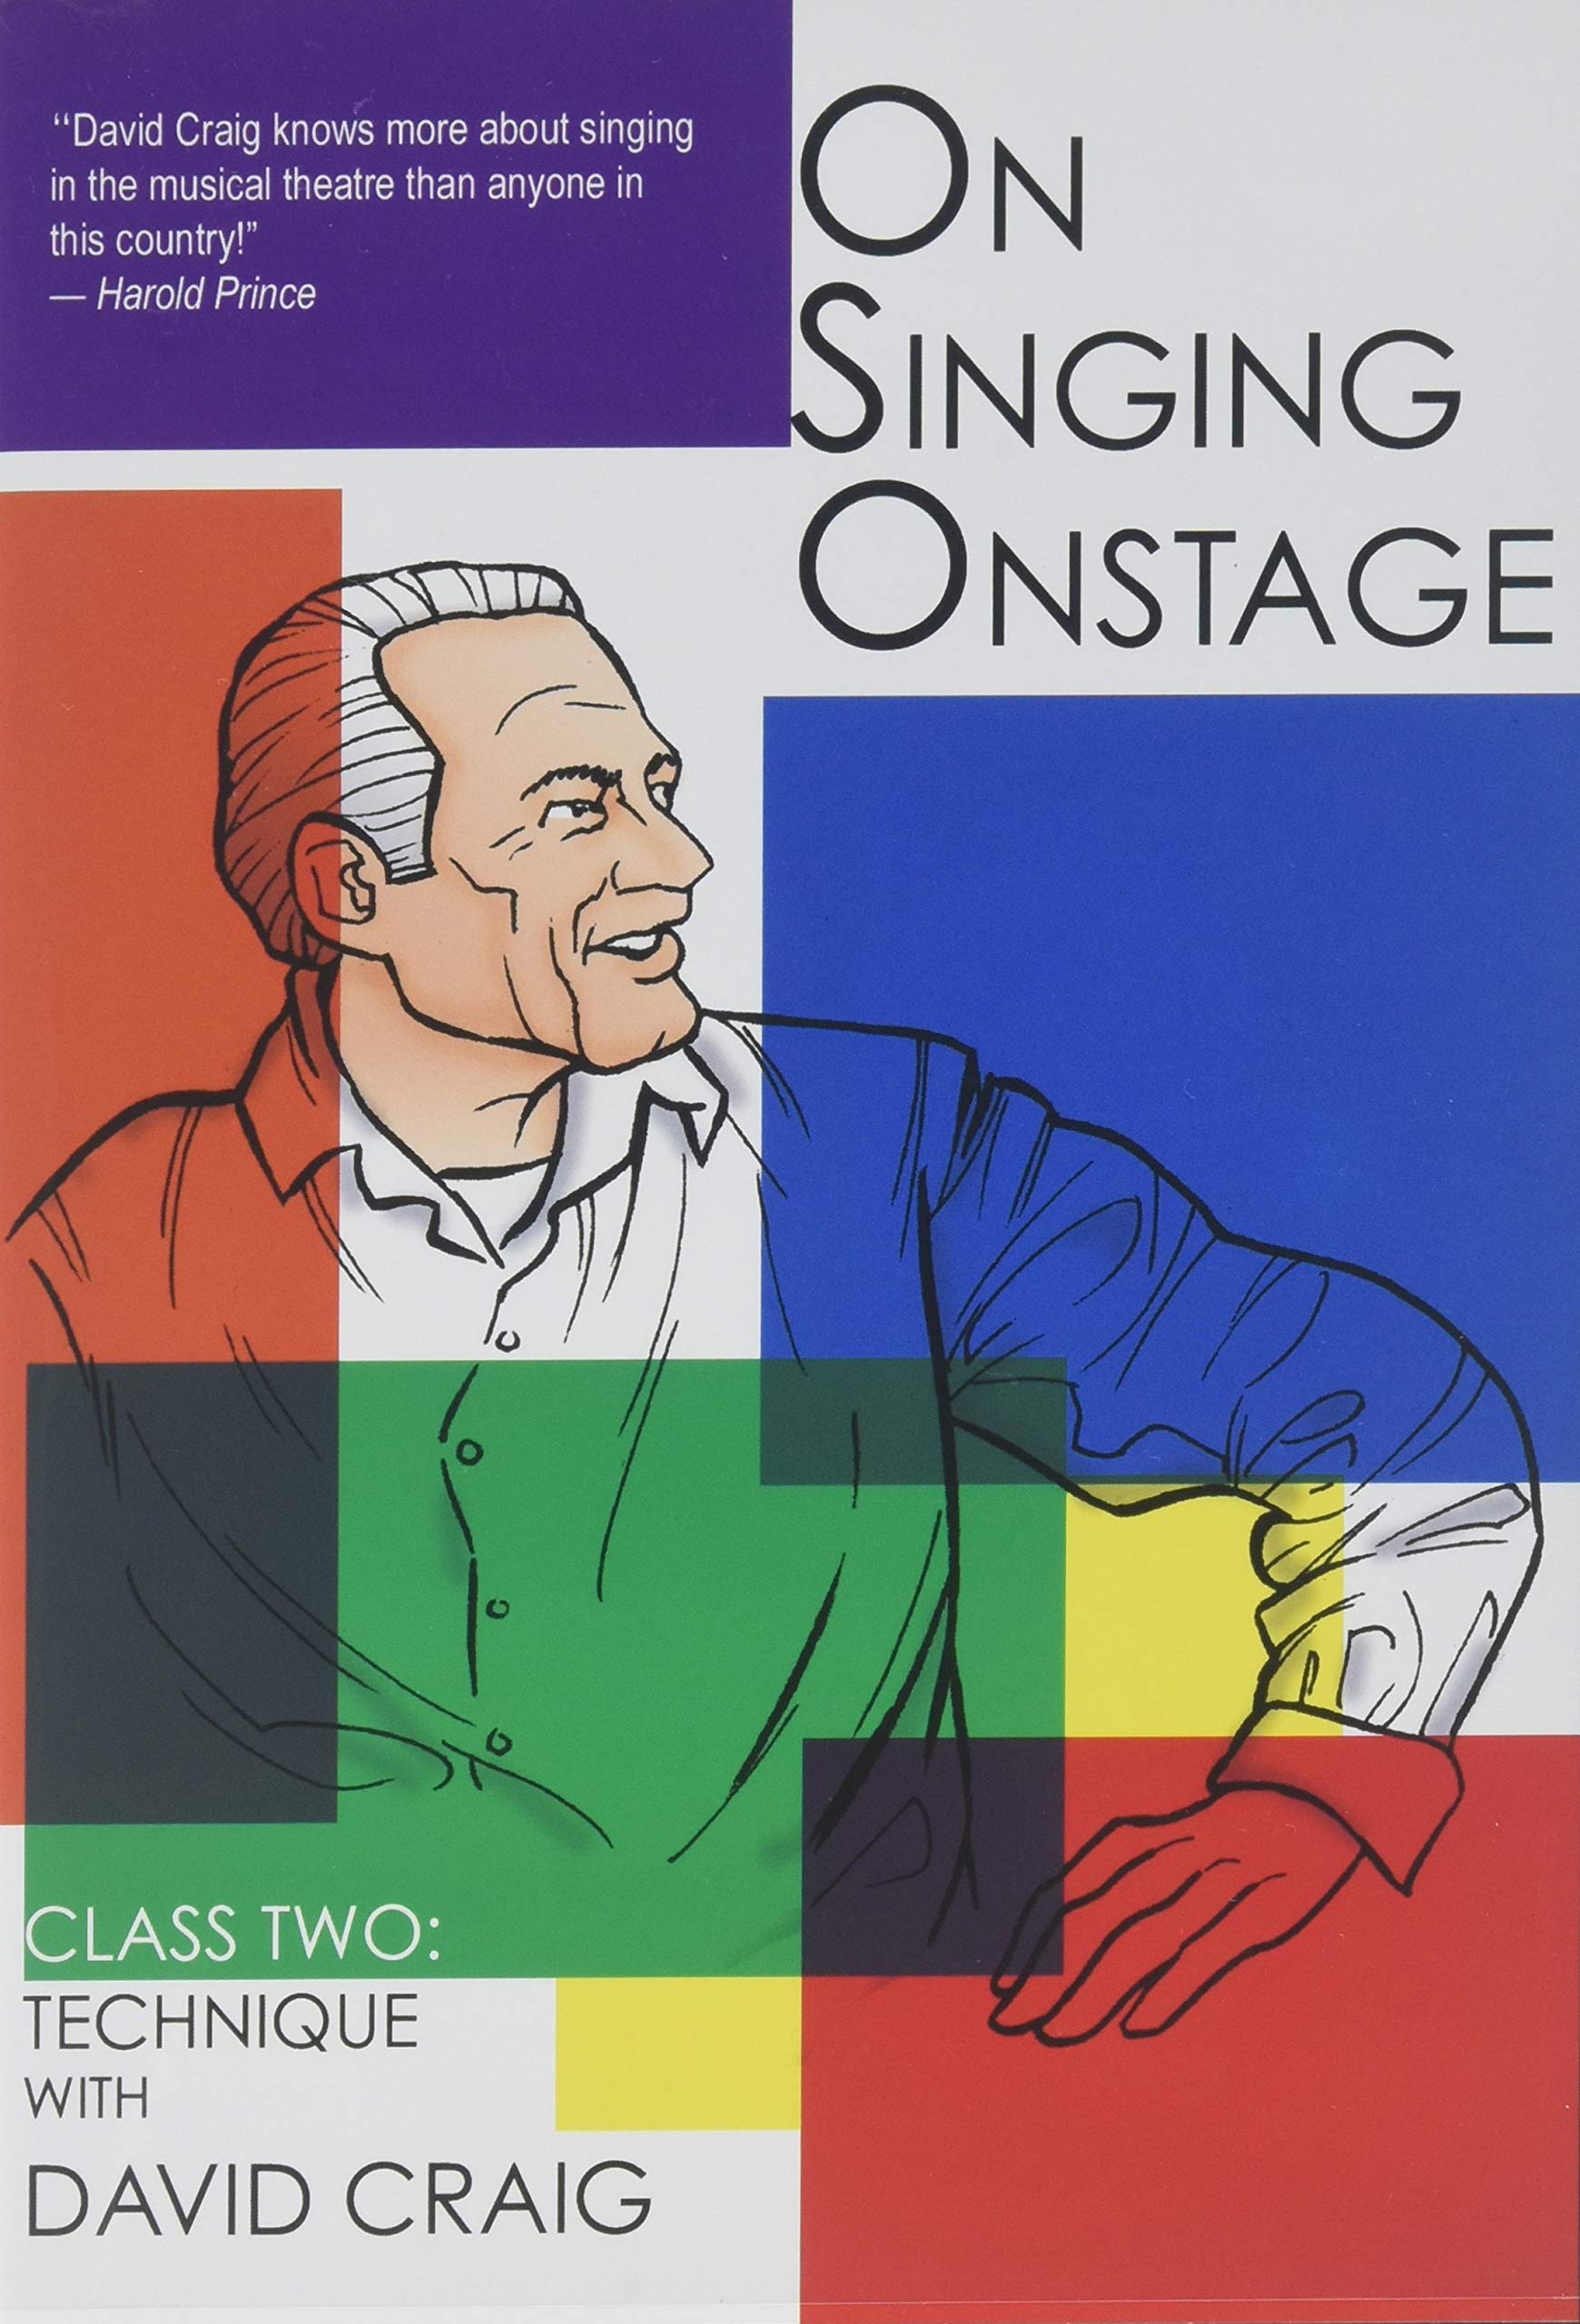 On Singing Onstage: Class Two : Technique David Craig